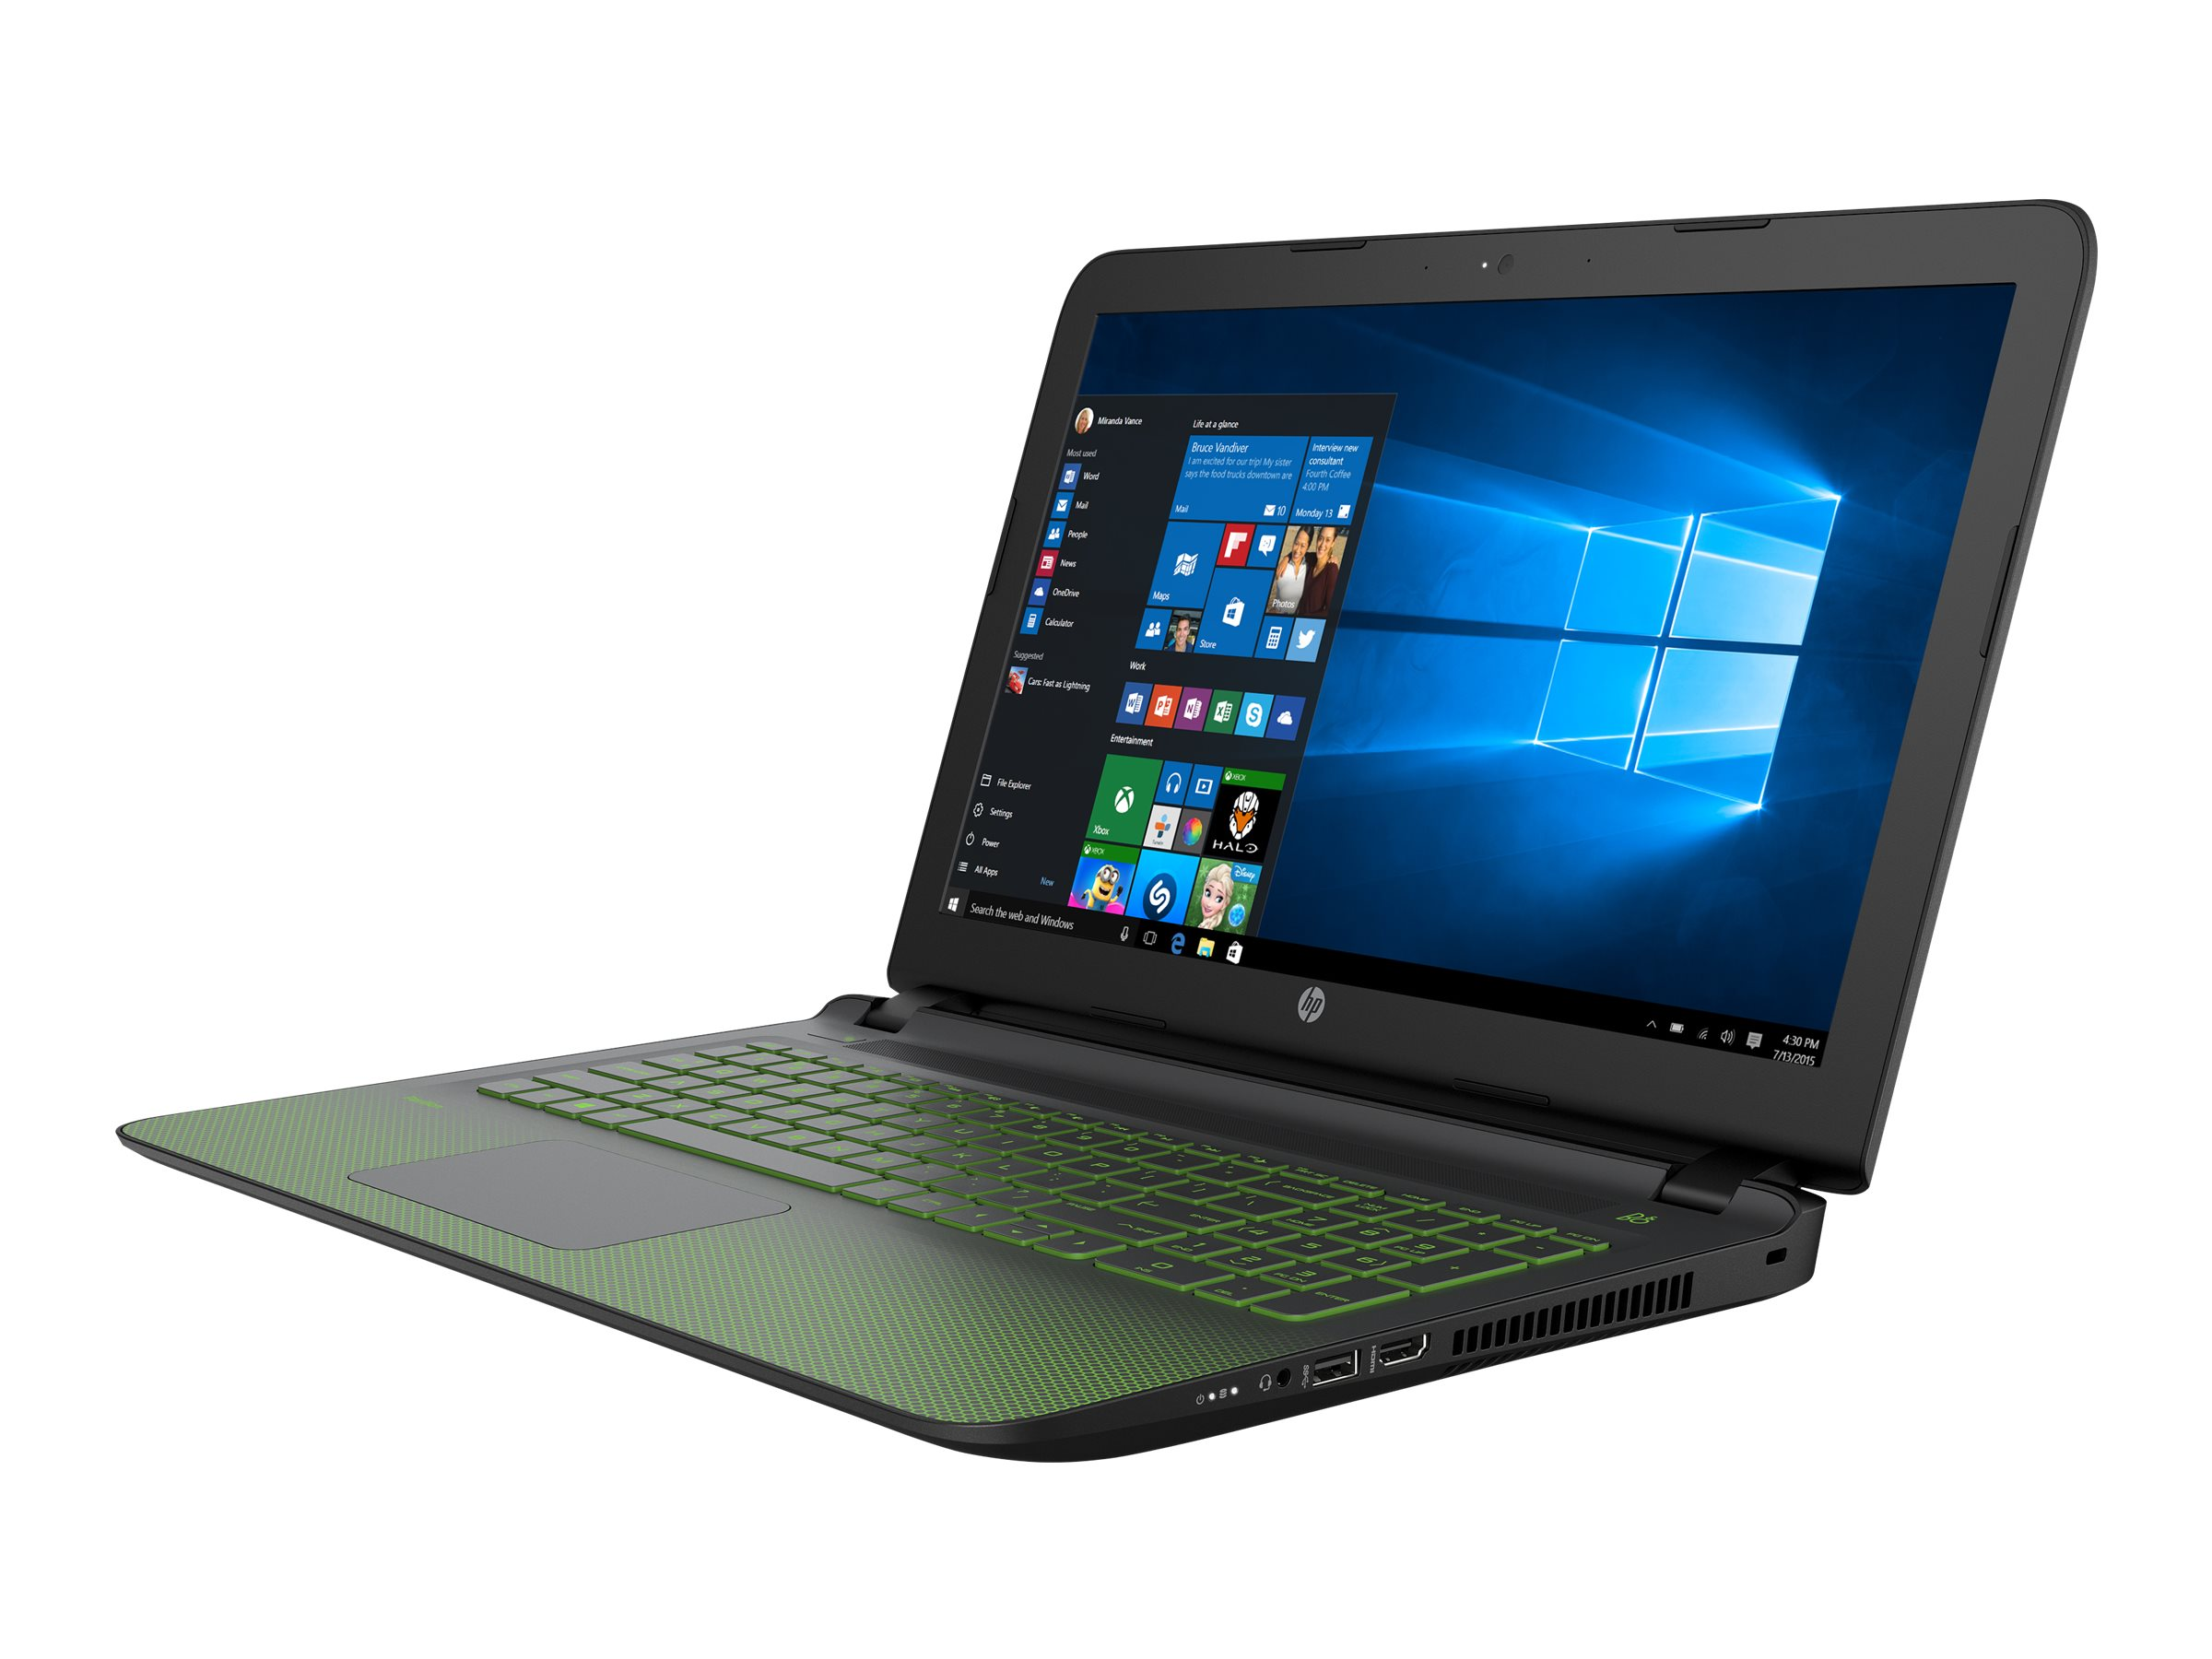 HP Notebook PC Core i7-4720 8GB 1TB 15.6 W10, N8J97UA#ABA, 30637889, Notebooks